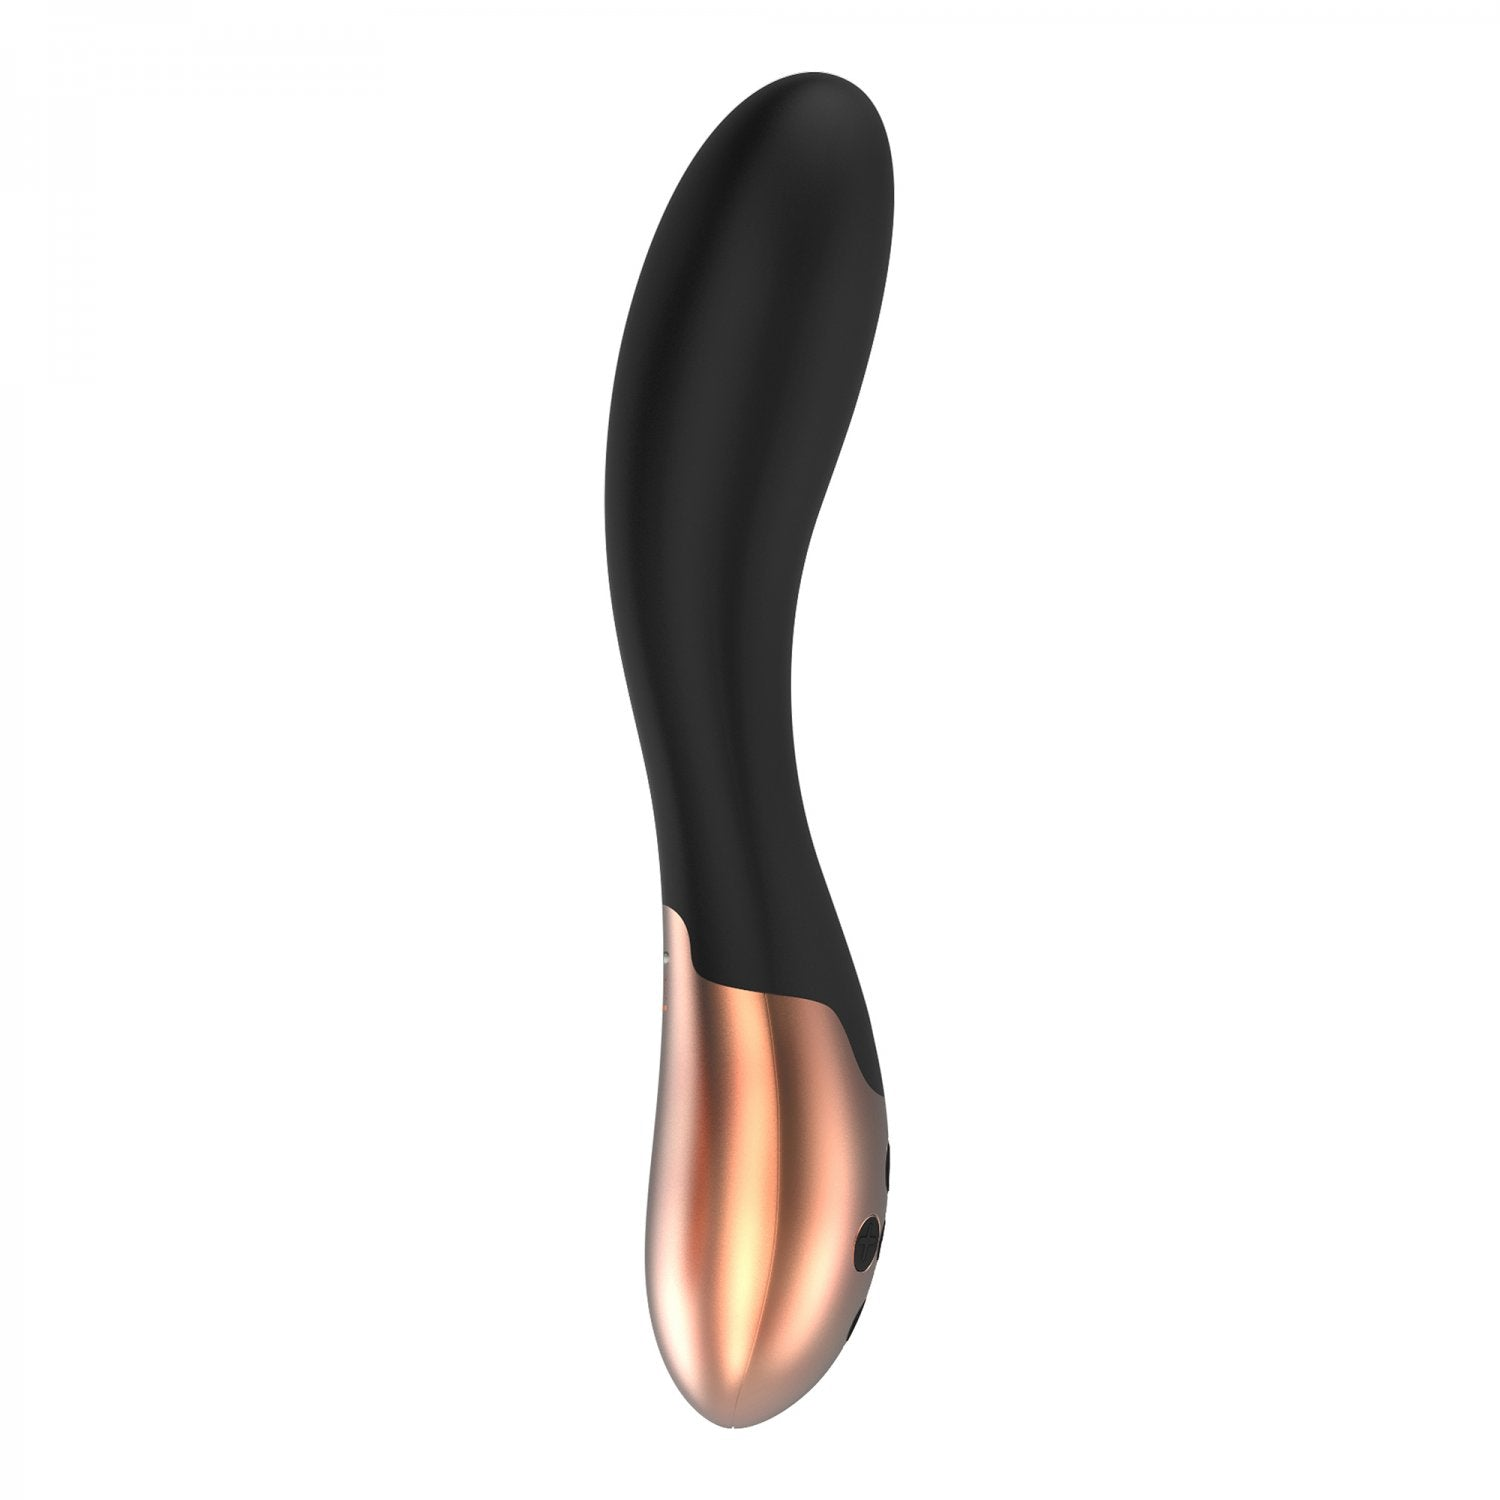 Posh Heating G-Spot Vibe in Black - Sex Toys Vancouver Same Day Delivery